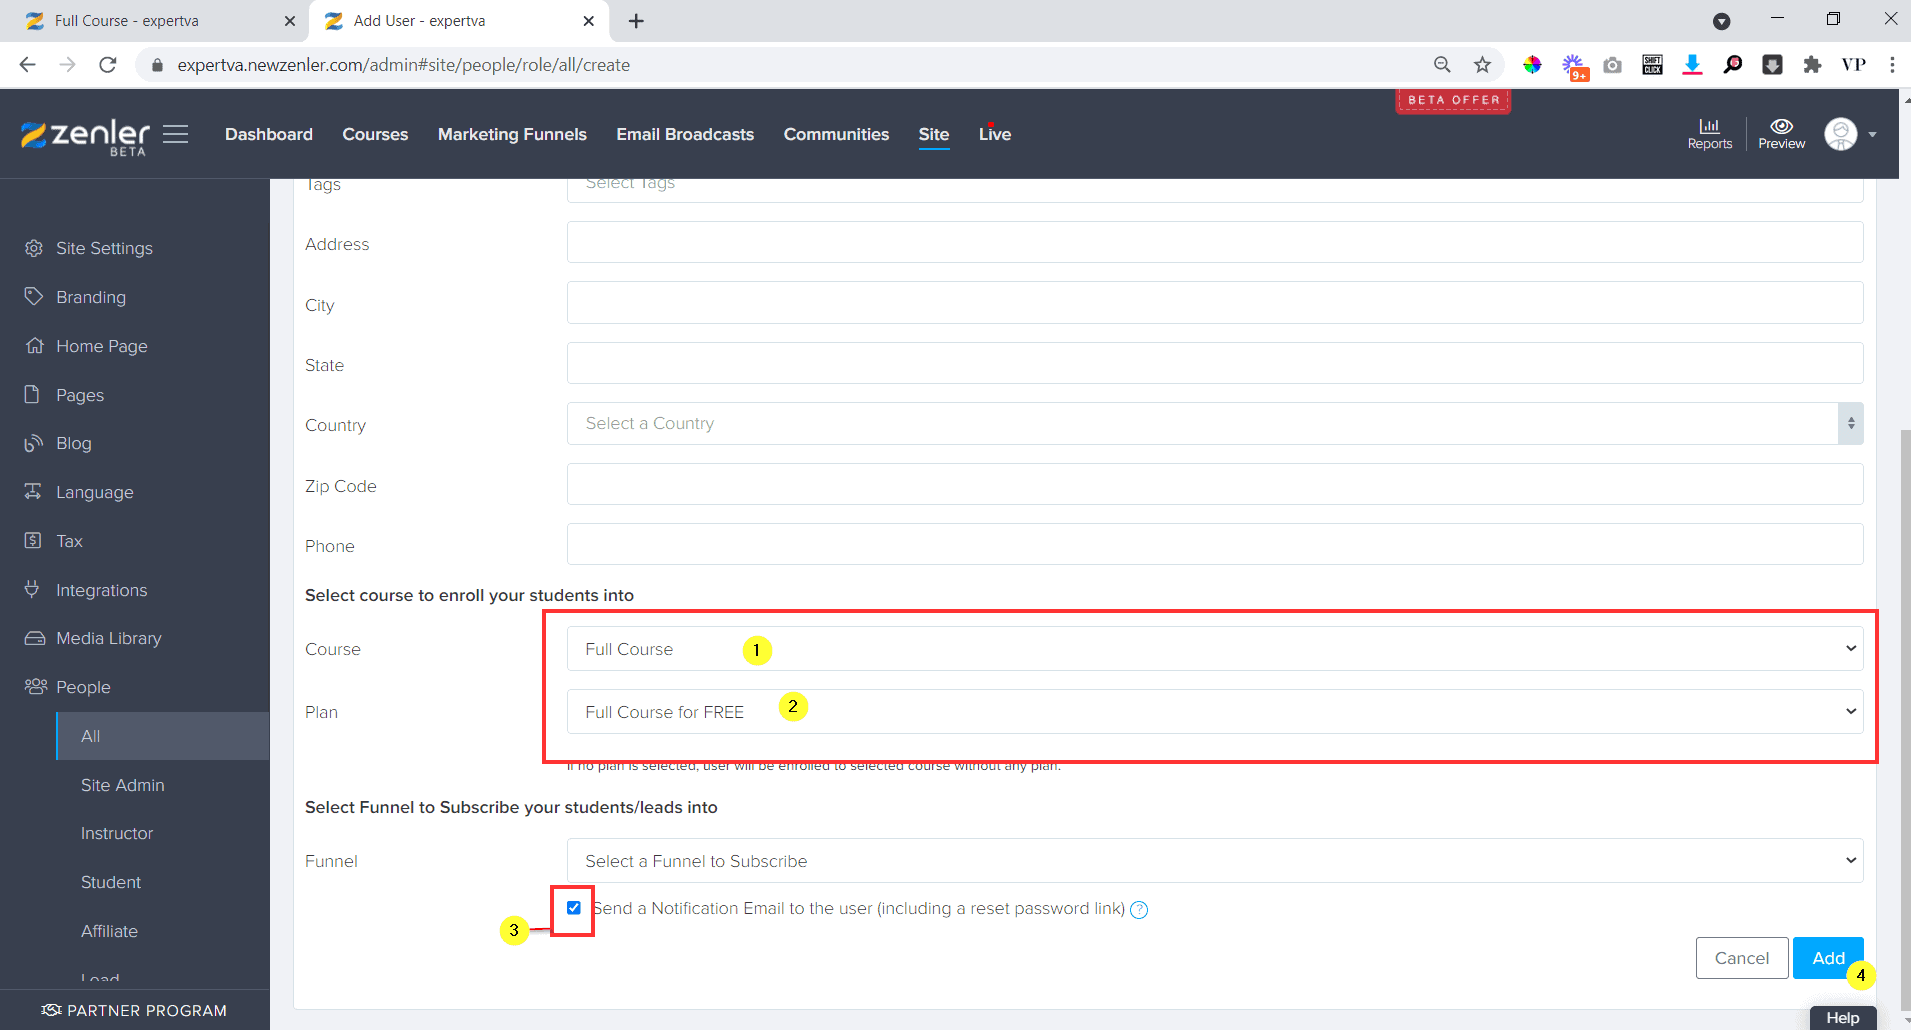 Scroll down and select the course namefor which you need to add the sudent